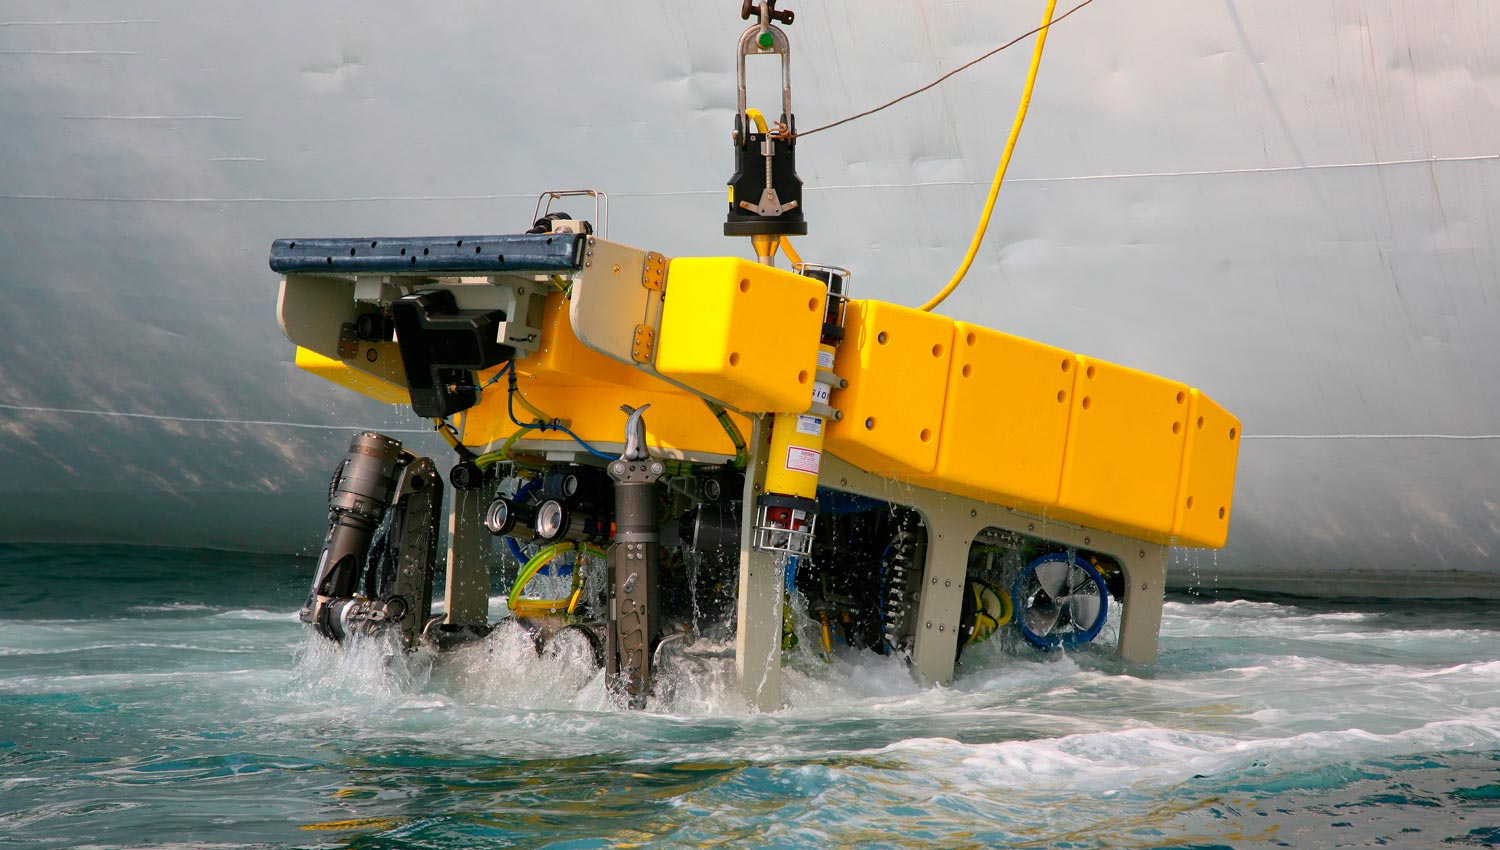 Marine robot being lowered into ocean